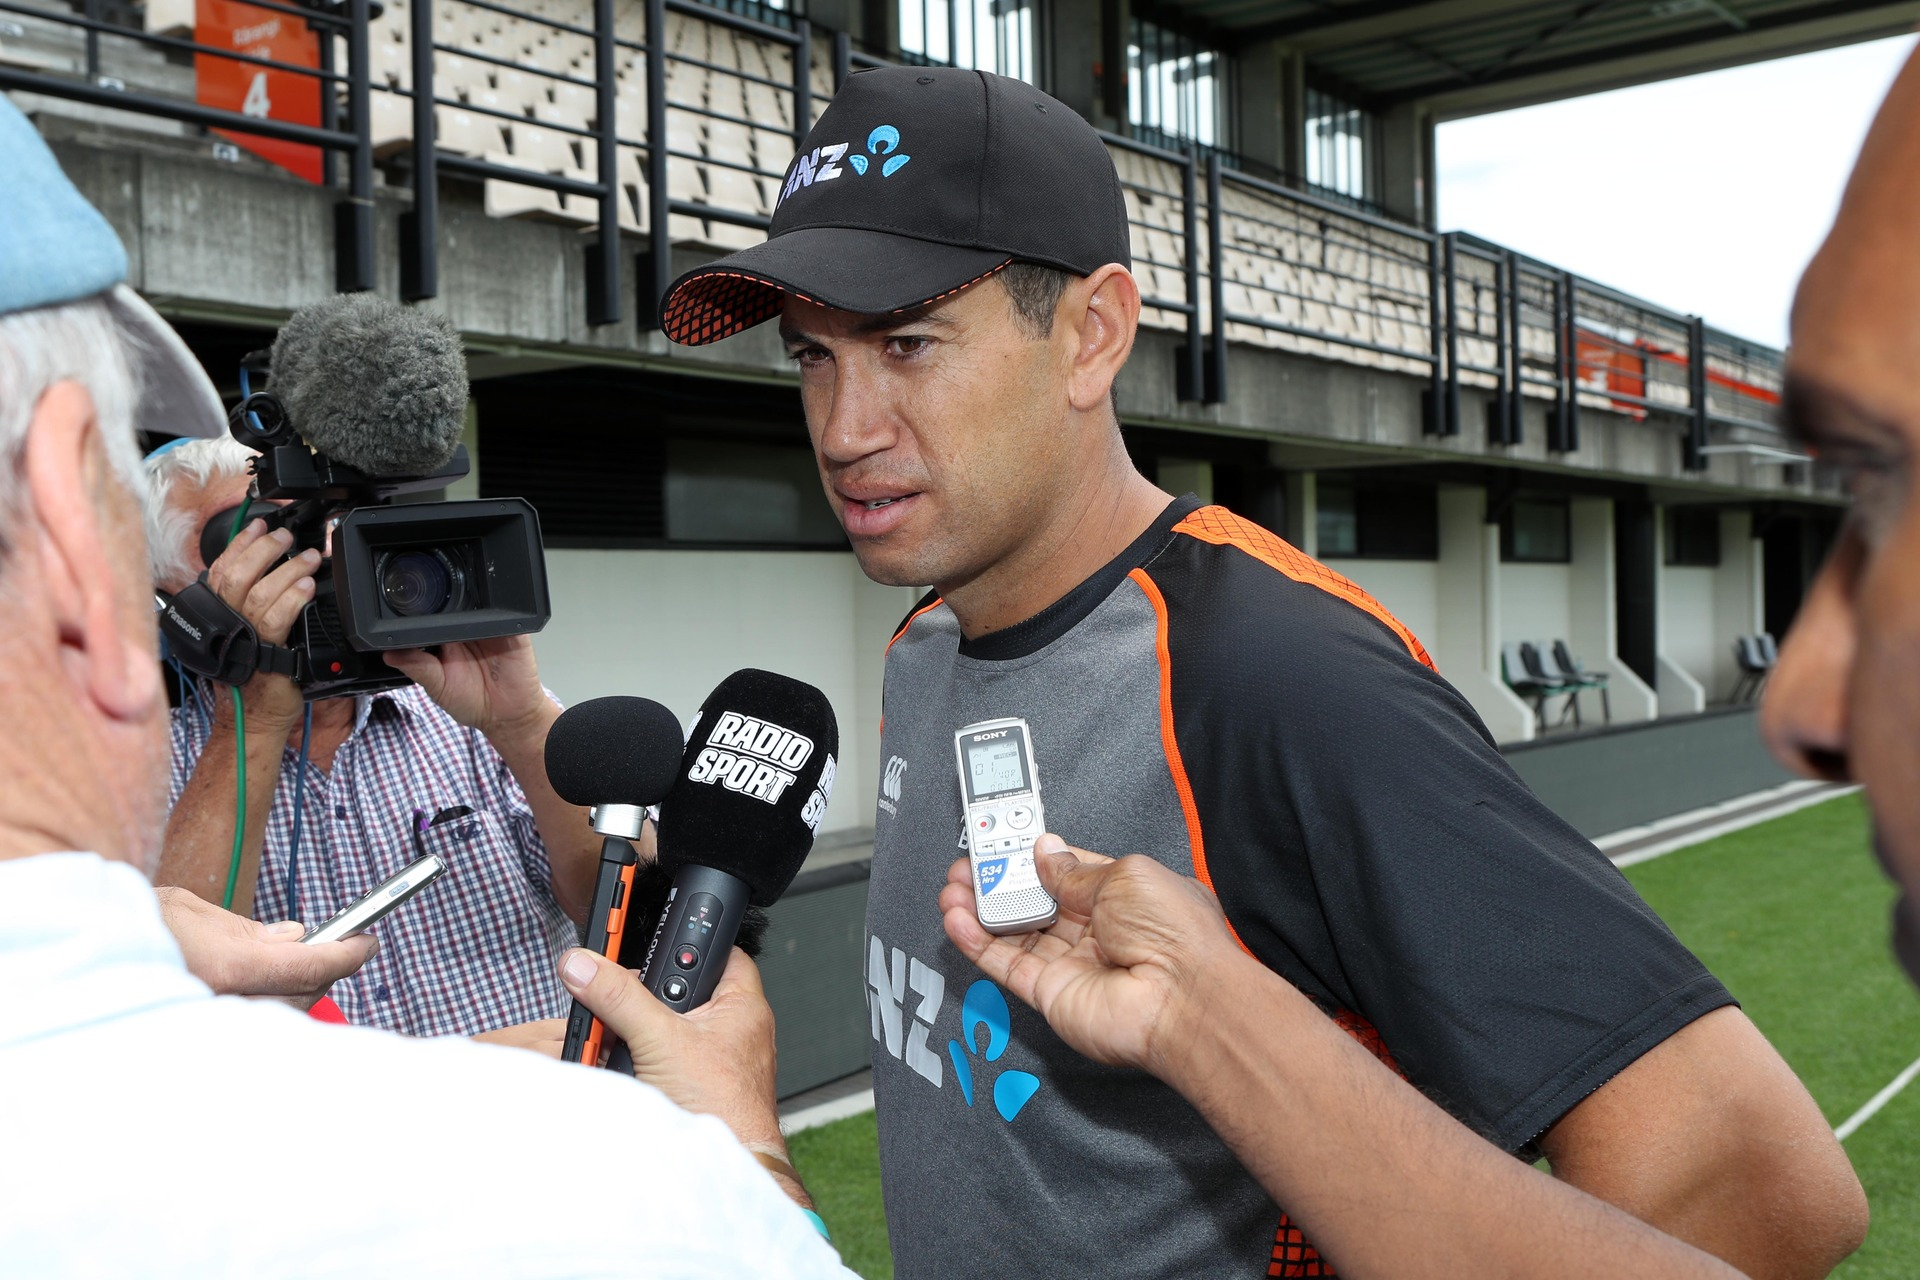 Cricket: Ross Taylor says Napier one-dayer a great chance for fans to see Virat Kohli in flesh